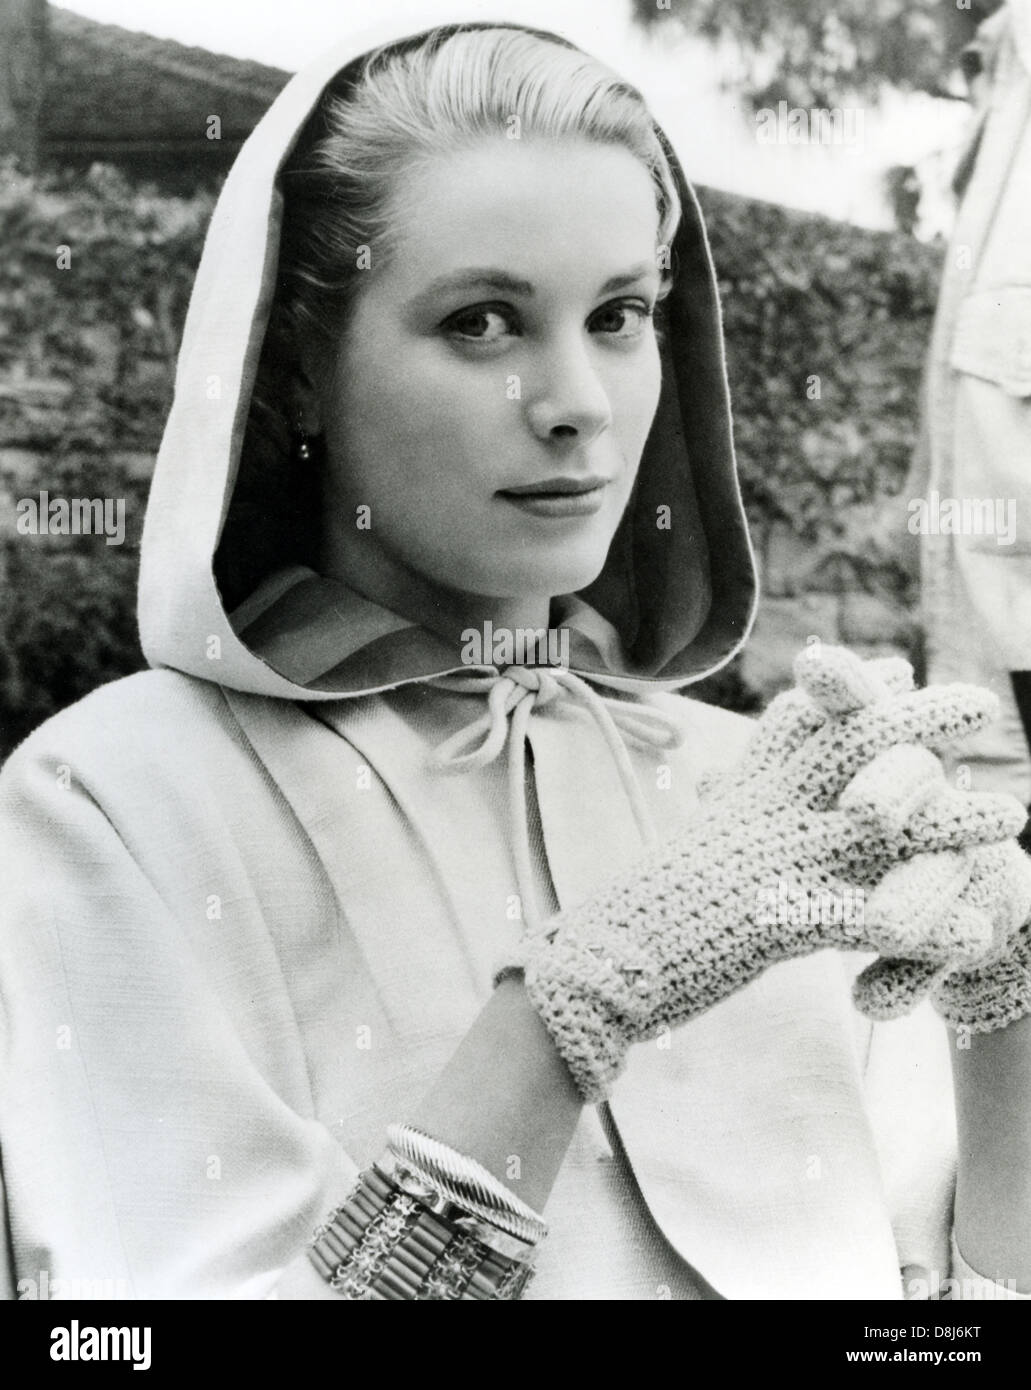 GRACE KELLY (1929-1982) US film actress and later Princess of Monaco about 1956 - Stock Image